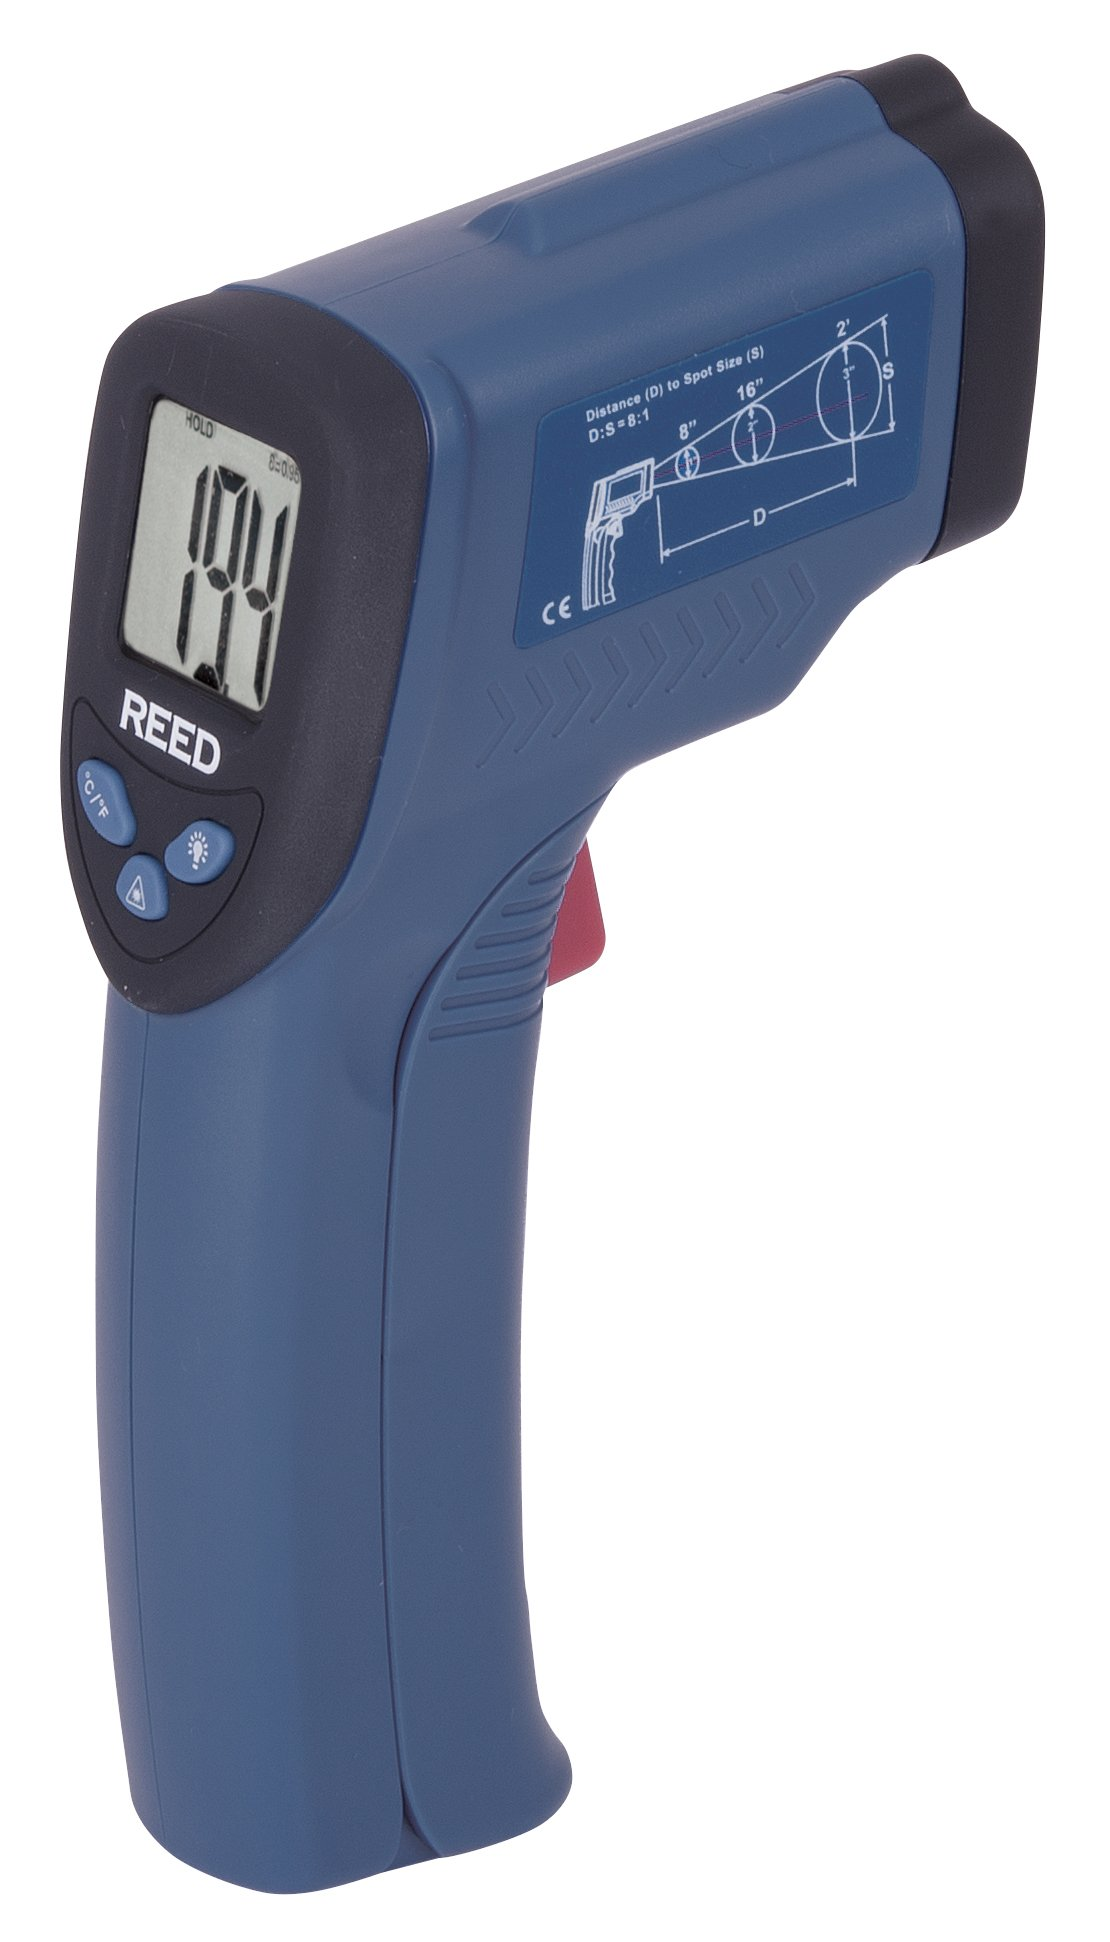 REED Instruments R2001 Infrared Thermometer, 8:1, 536°F (280°C)